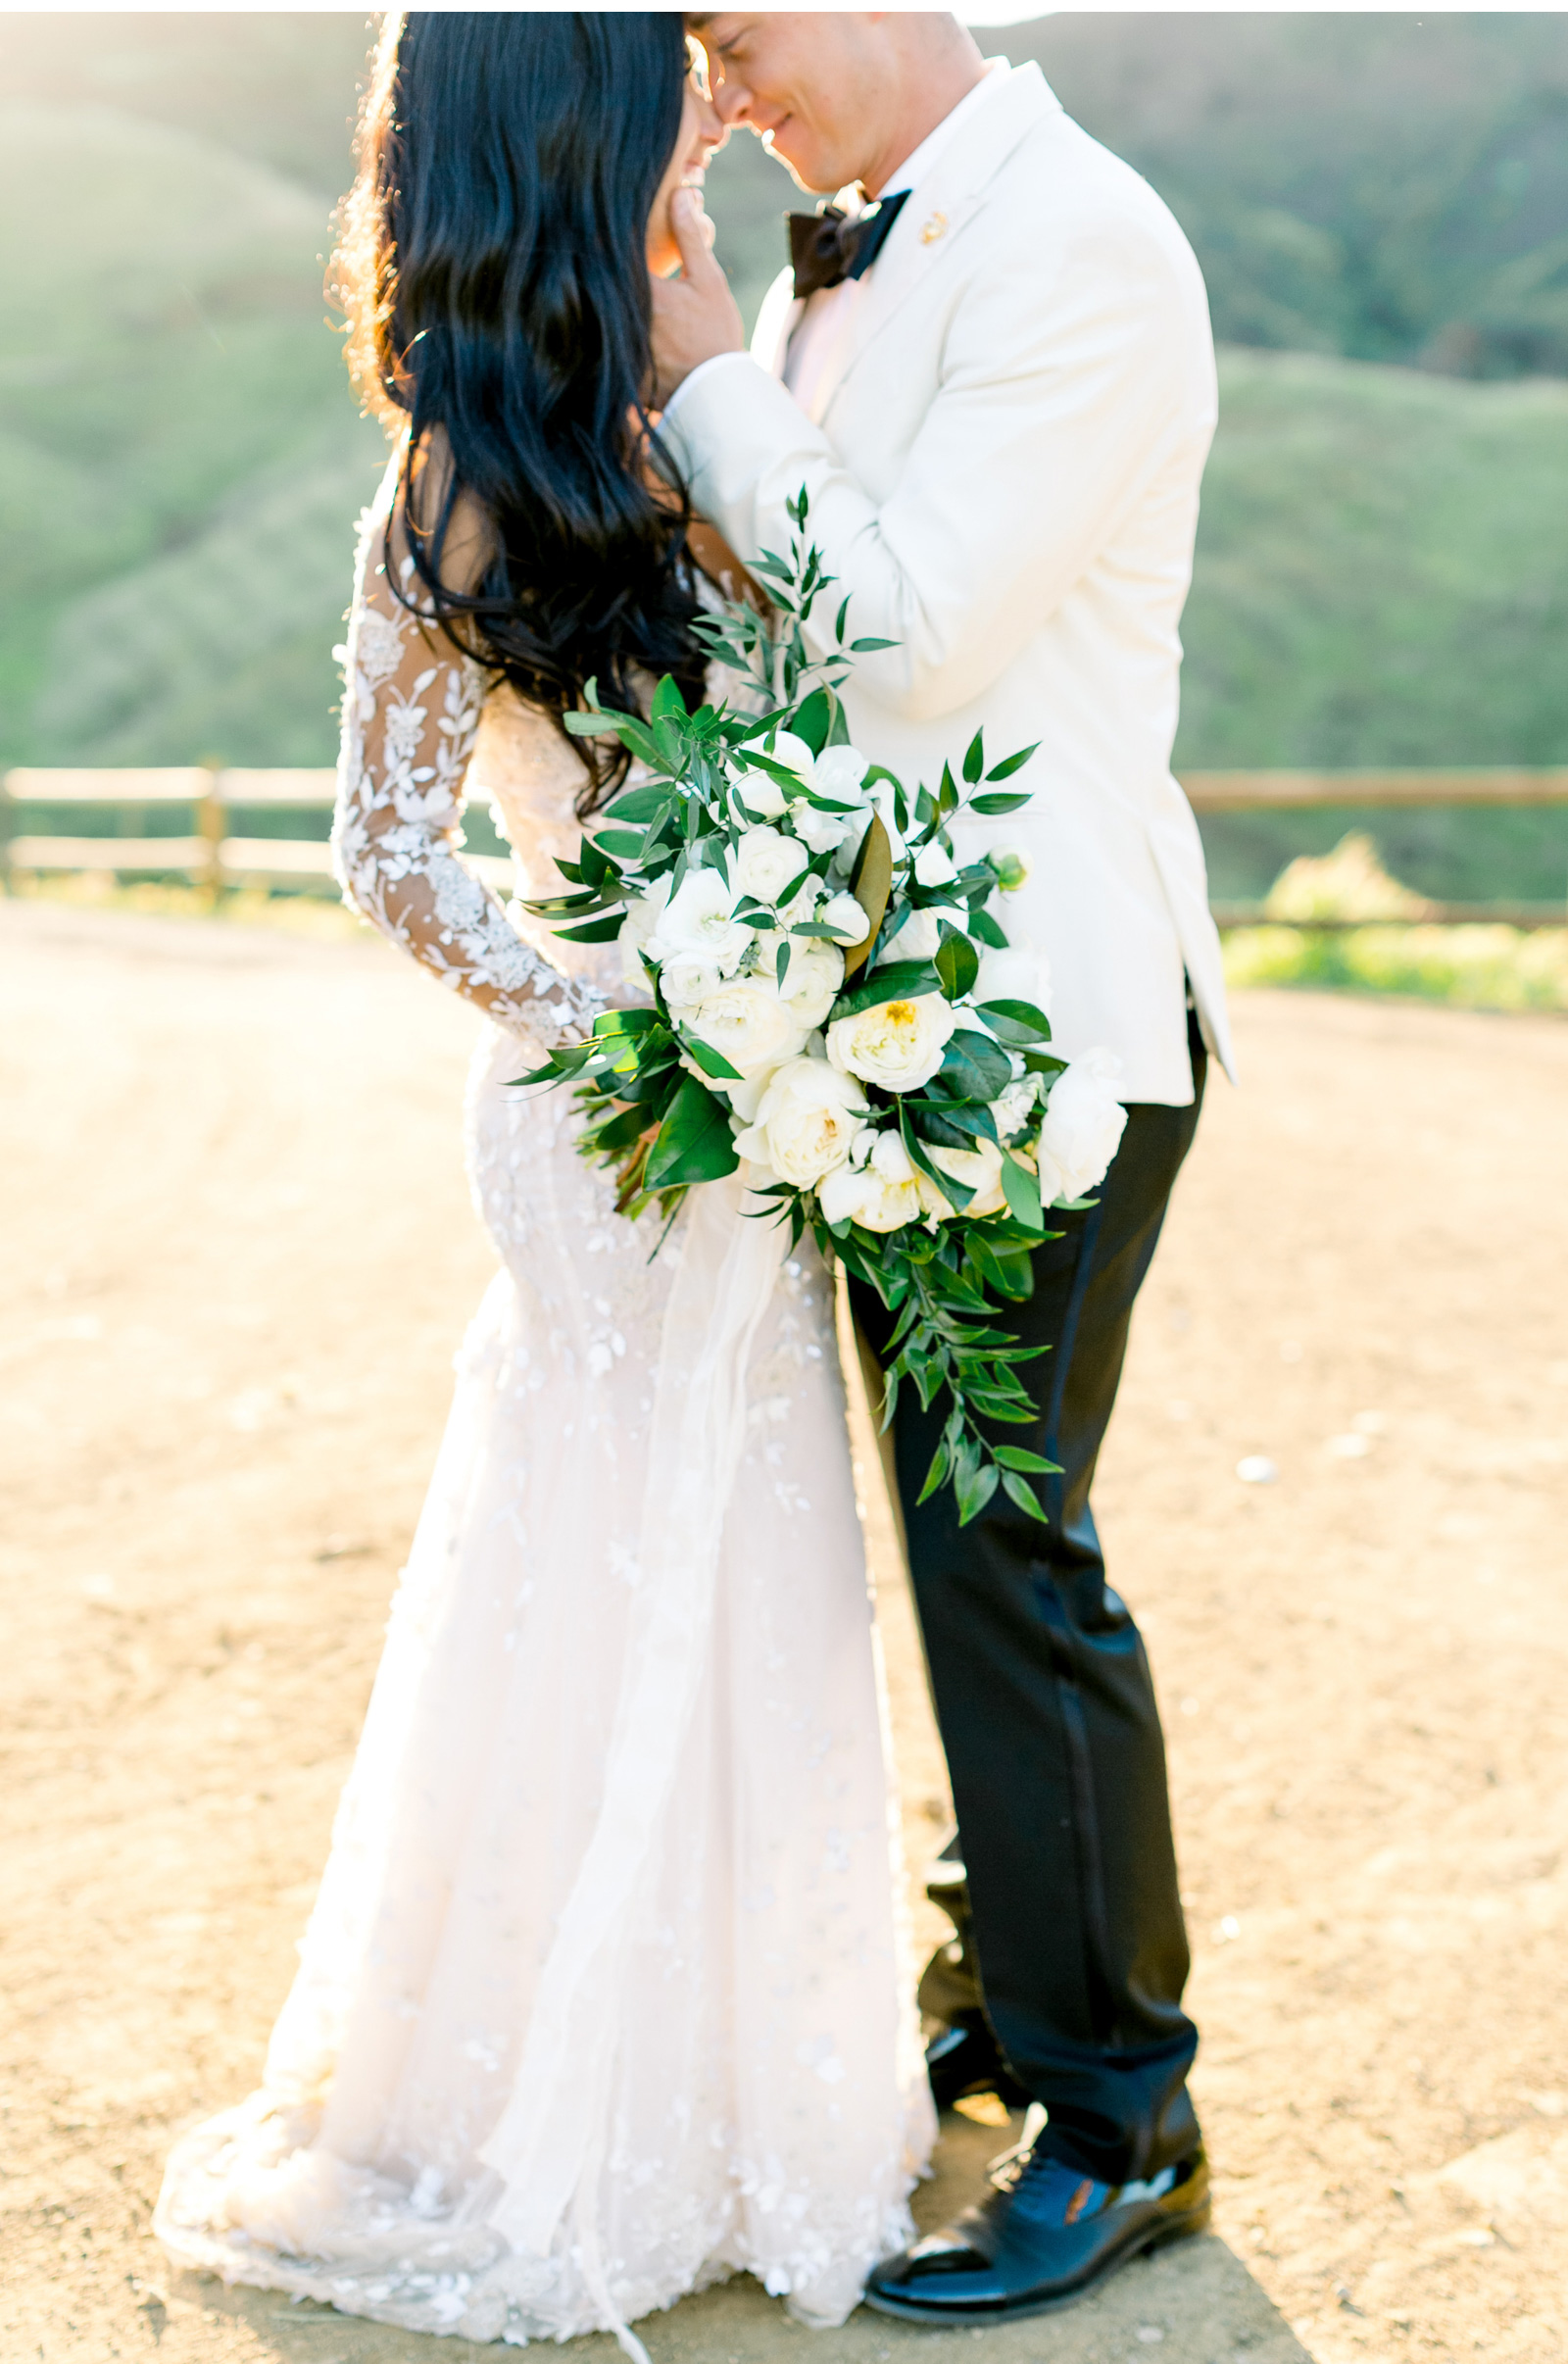 Style-Me-Pretty-Malibu-Wedding-Venues-Southern-California-Wedding-Photographer-Triunfo-Creek-Malibu-Photographer-Natalie-Schutt-Photography_07.jpg